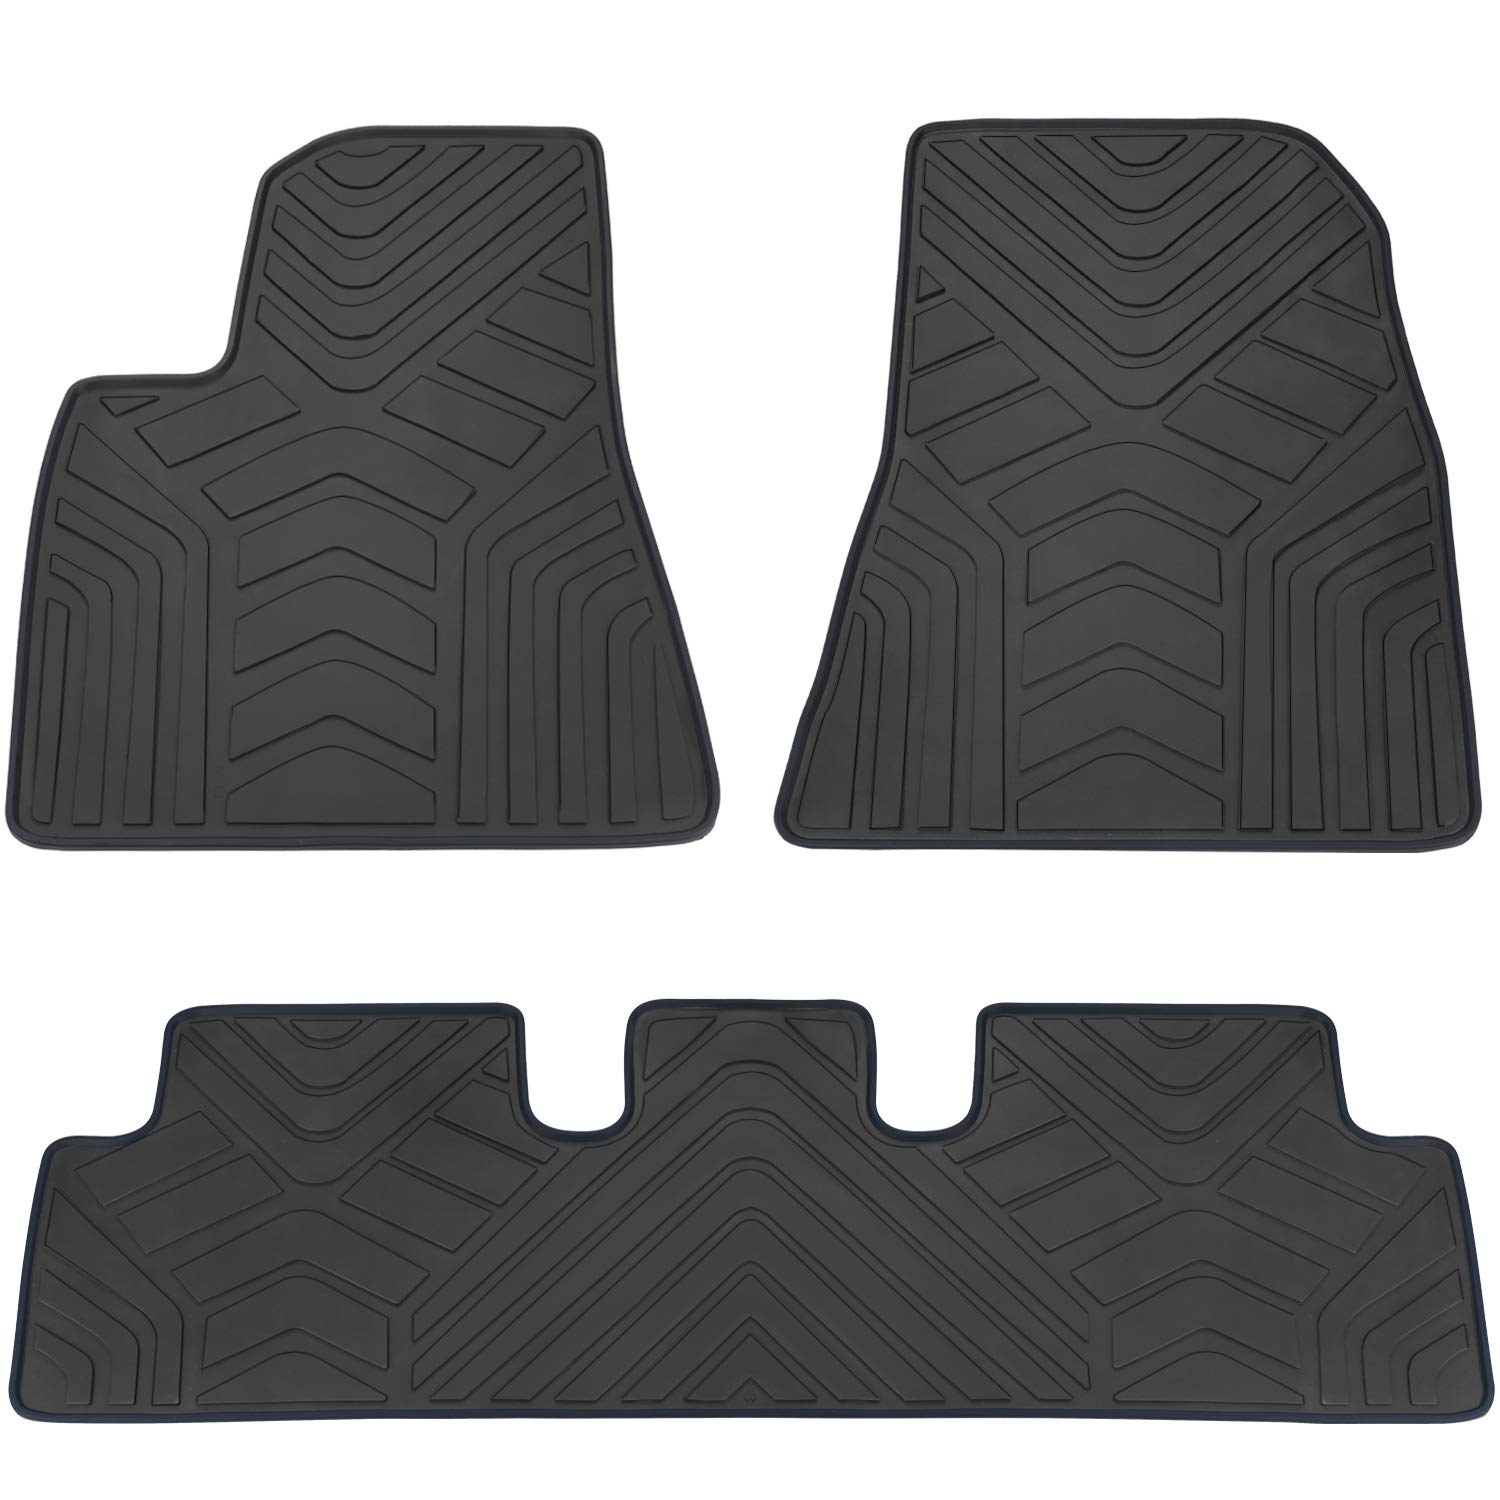 San Auto Car Floor Mats Custom Fit for Tesla Model 3 2017 2018 2019 2020 Full Black Rubber Car Floor Liners Set All Weather Protection Heavy Duty Odorless